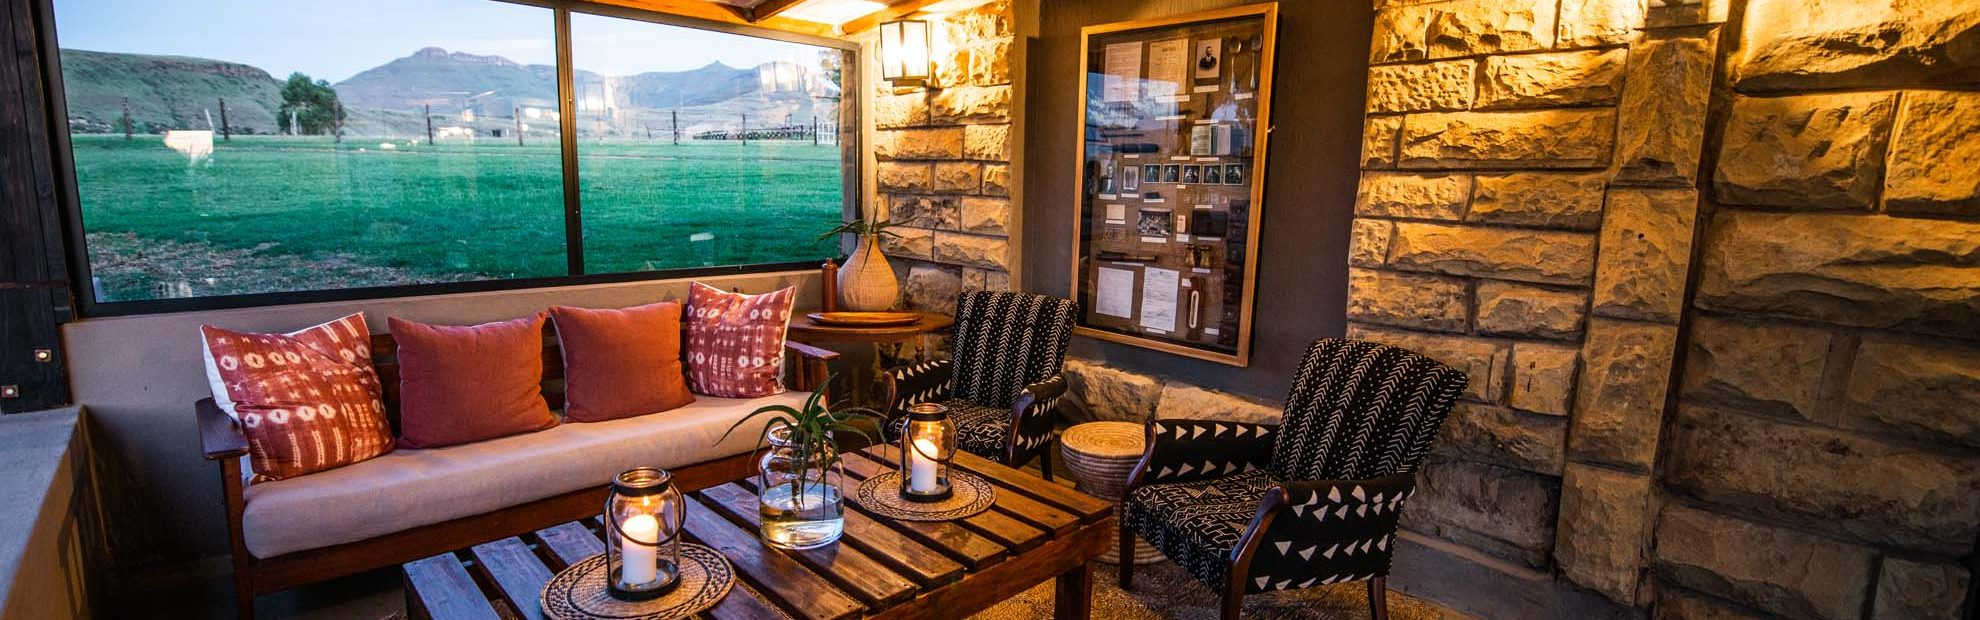 Bokpoort Mountain Lodge retains all its sandstone history, charm, and character